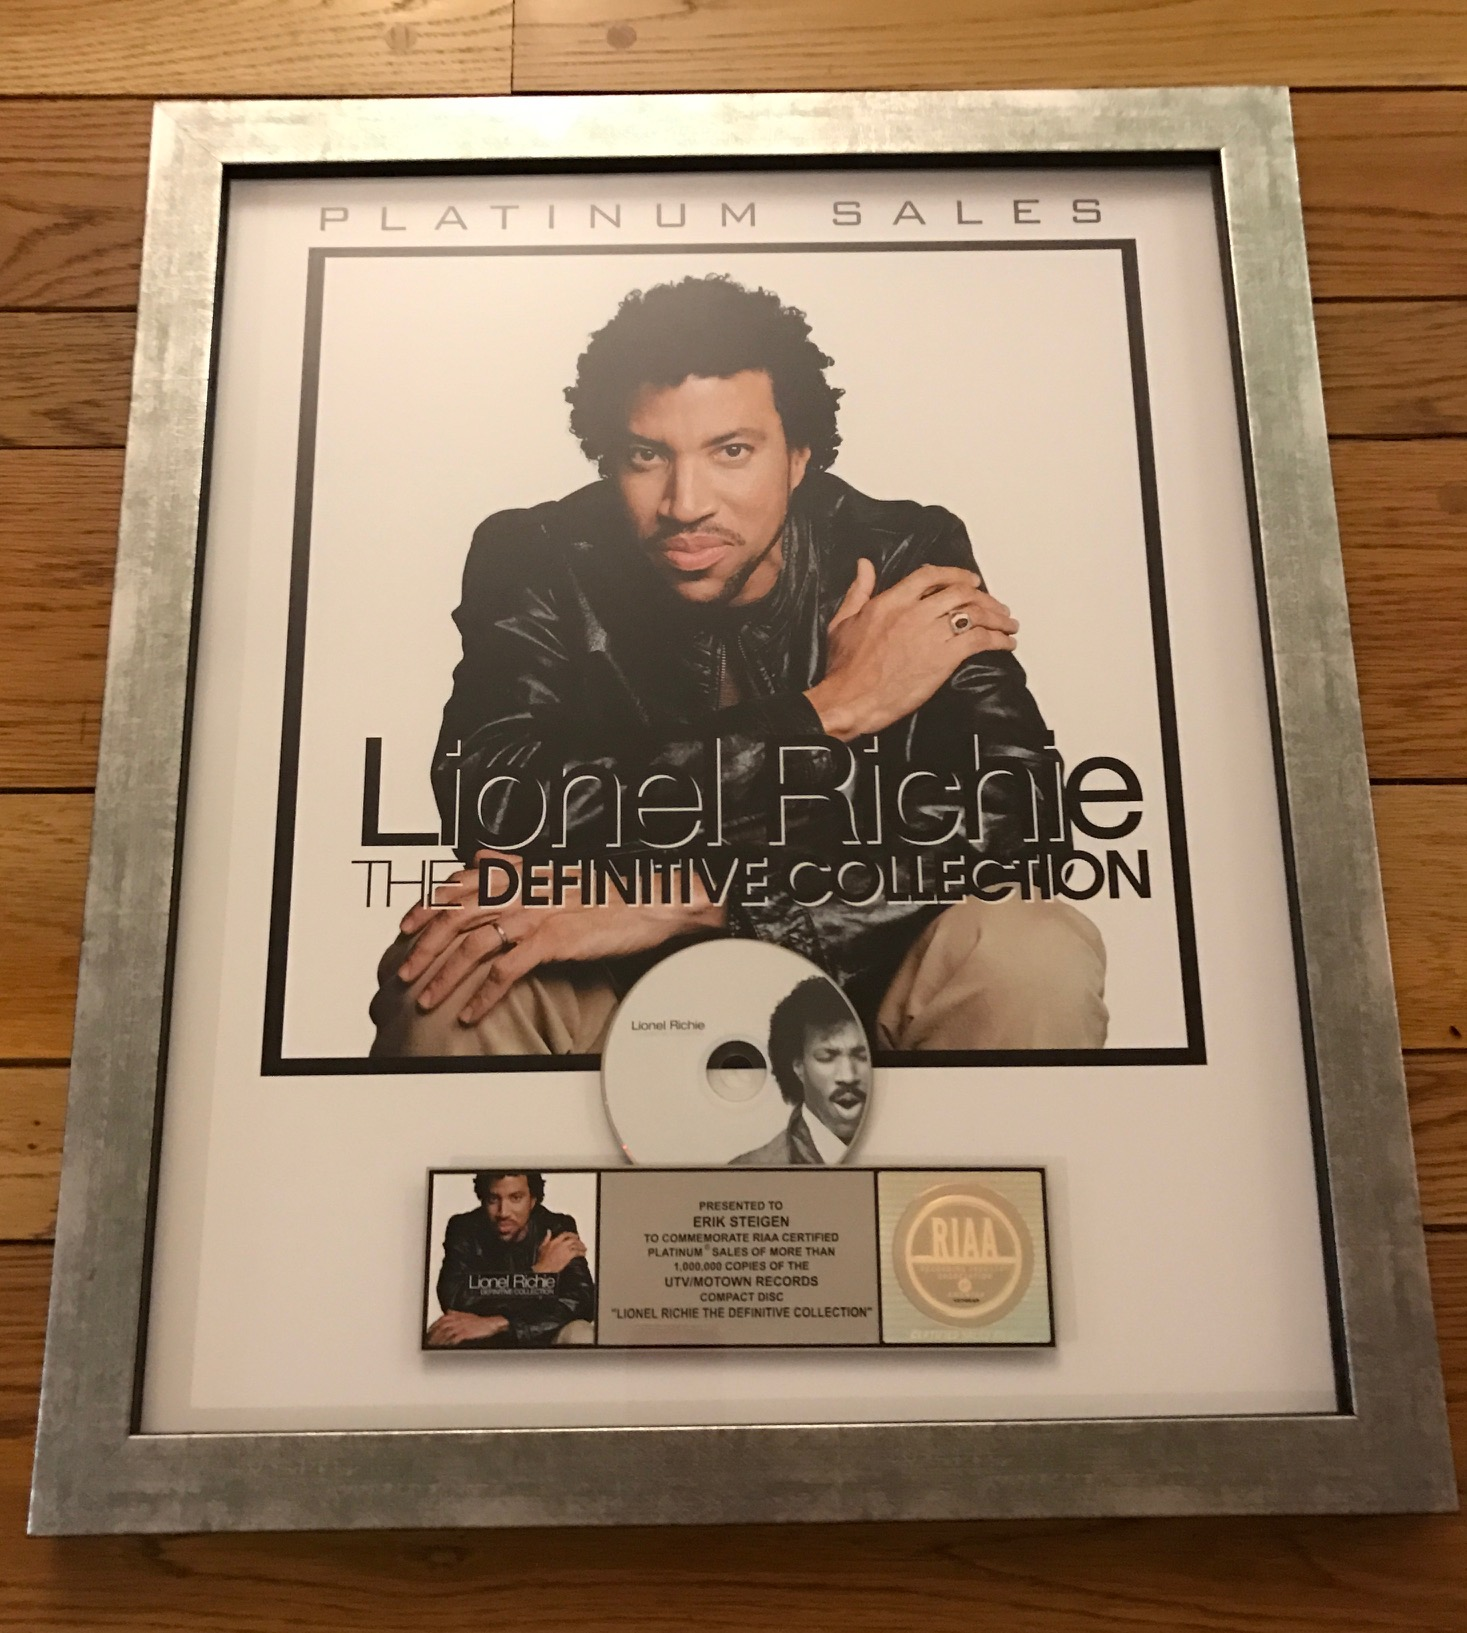 Lionel Richie Definitive Collection plaque.jpg